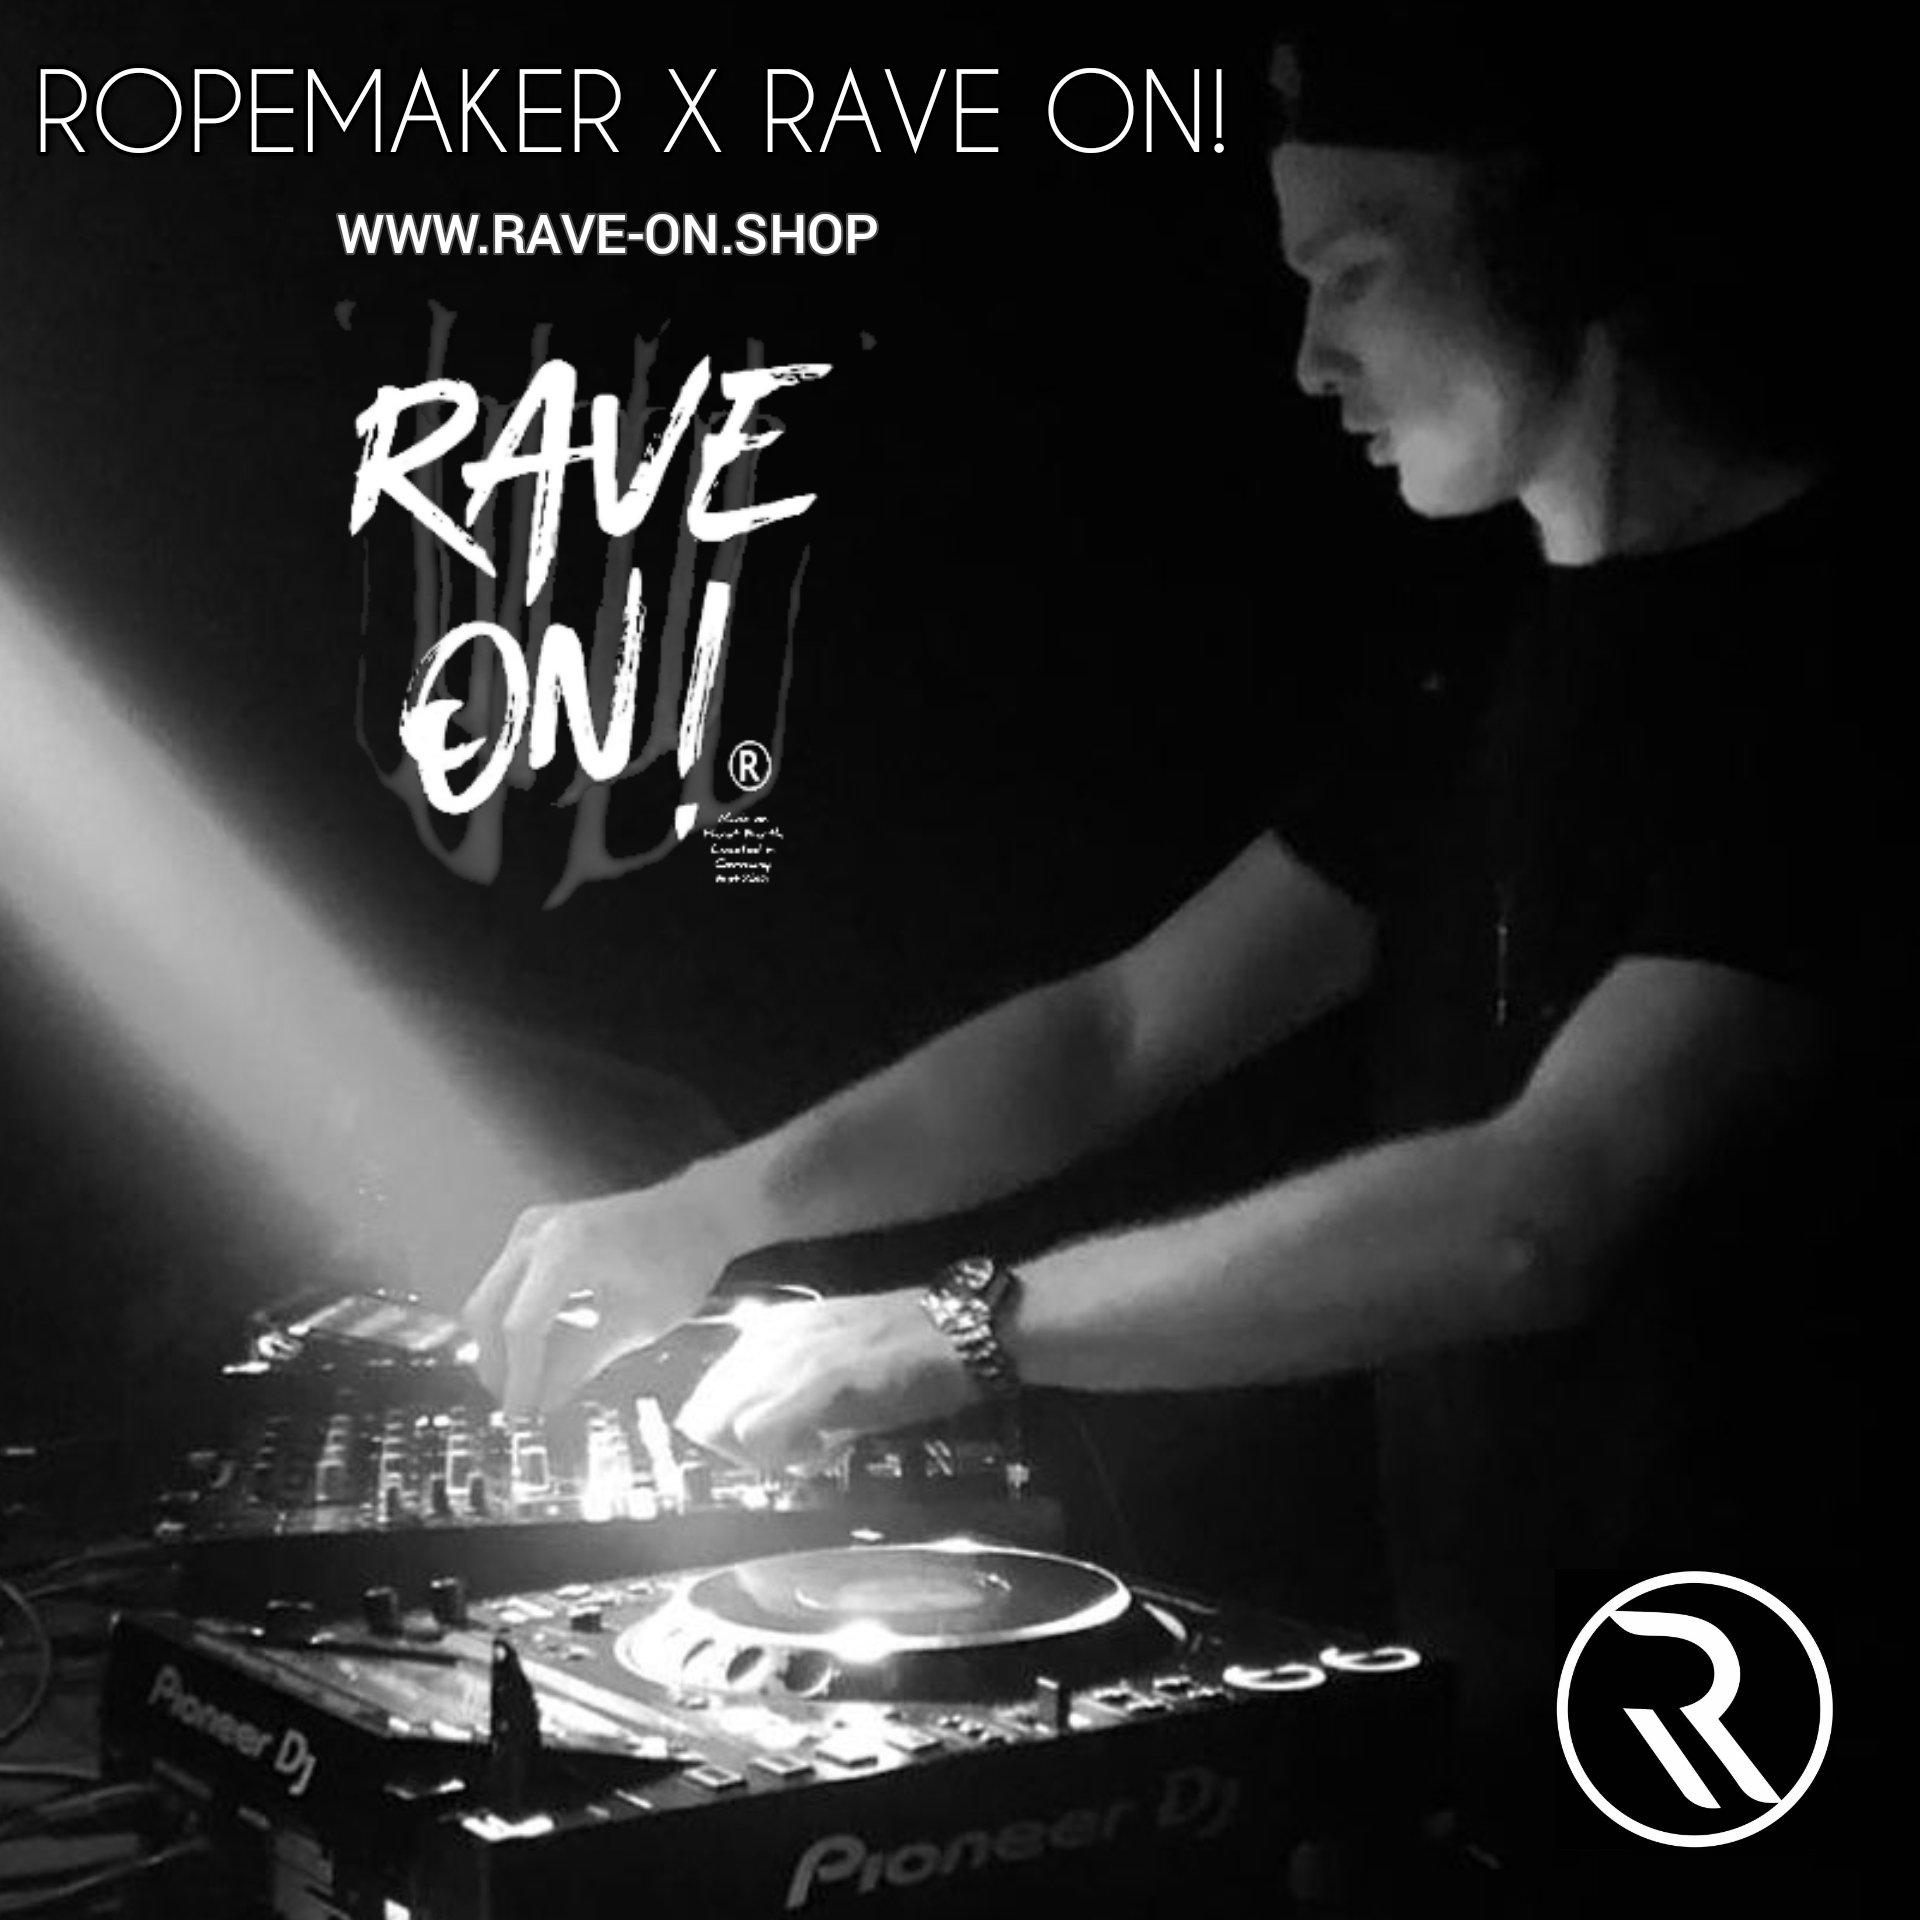 ROPEMAKER RAVE-ON!®️ WHITE LONG SHIRT - Herren Long Tee Men Long Tee - Rave On!® der Club & Techno Szene Shop für Coole Junge Mode Streetwear Style & Fashion Outfits + Sexy Festival 420 Stuff